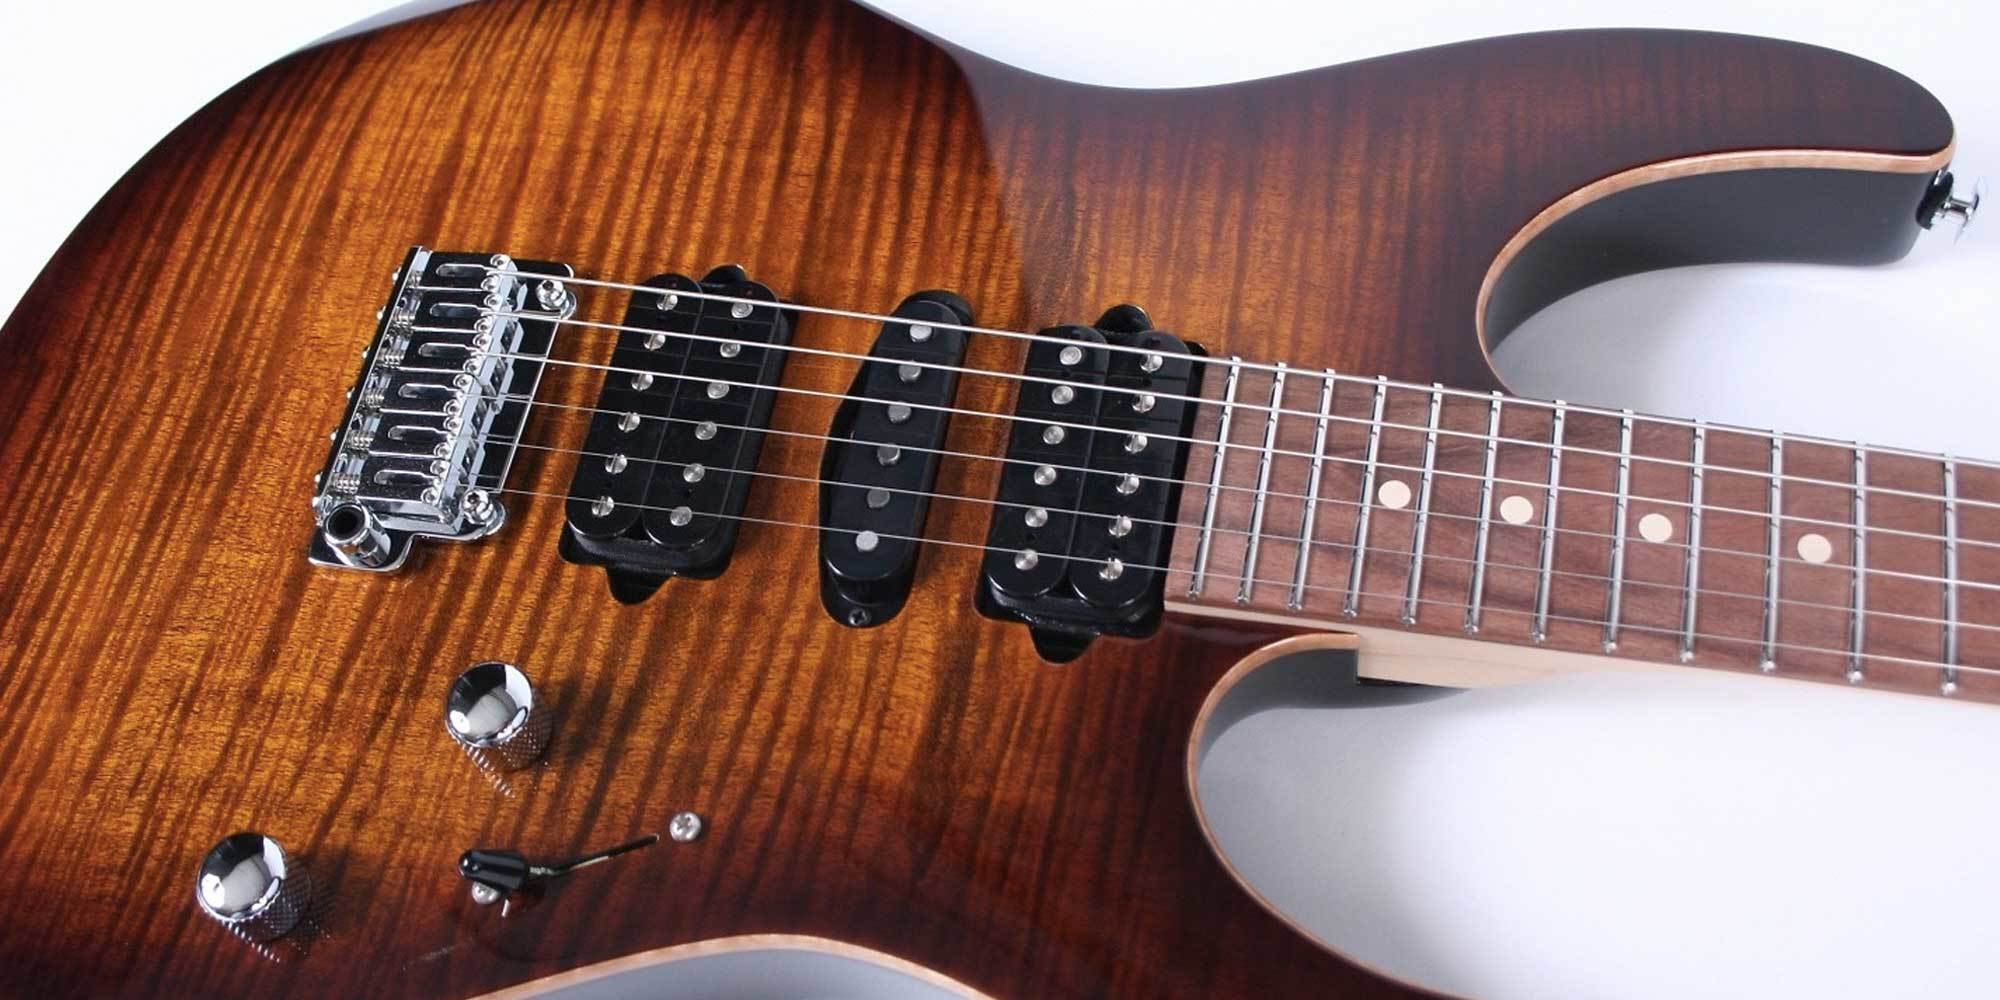 A Brief History of Suhr Guitars